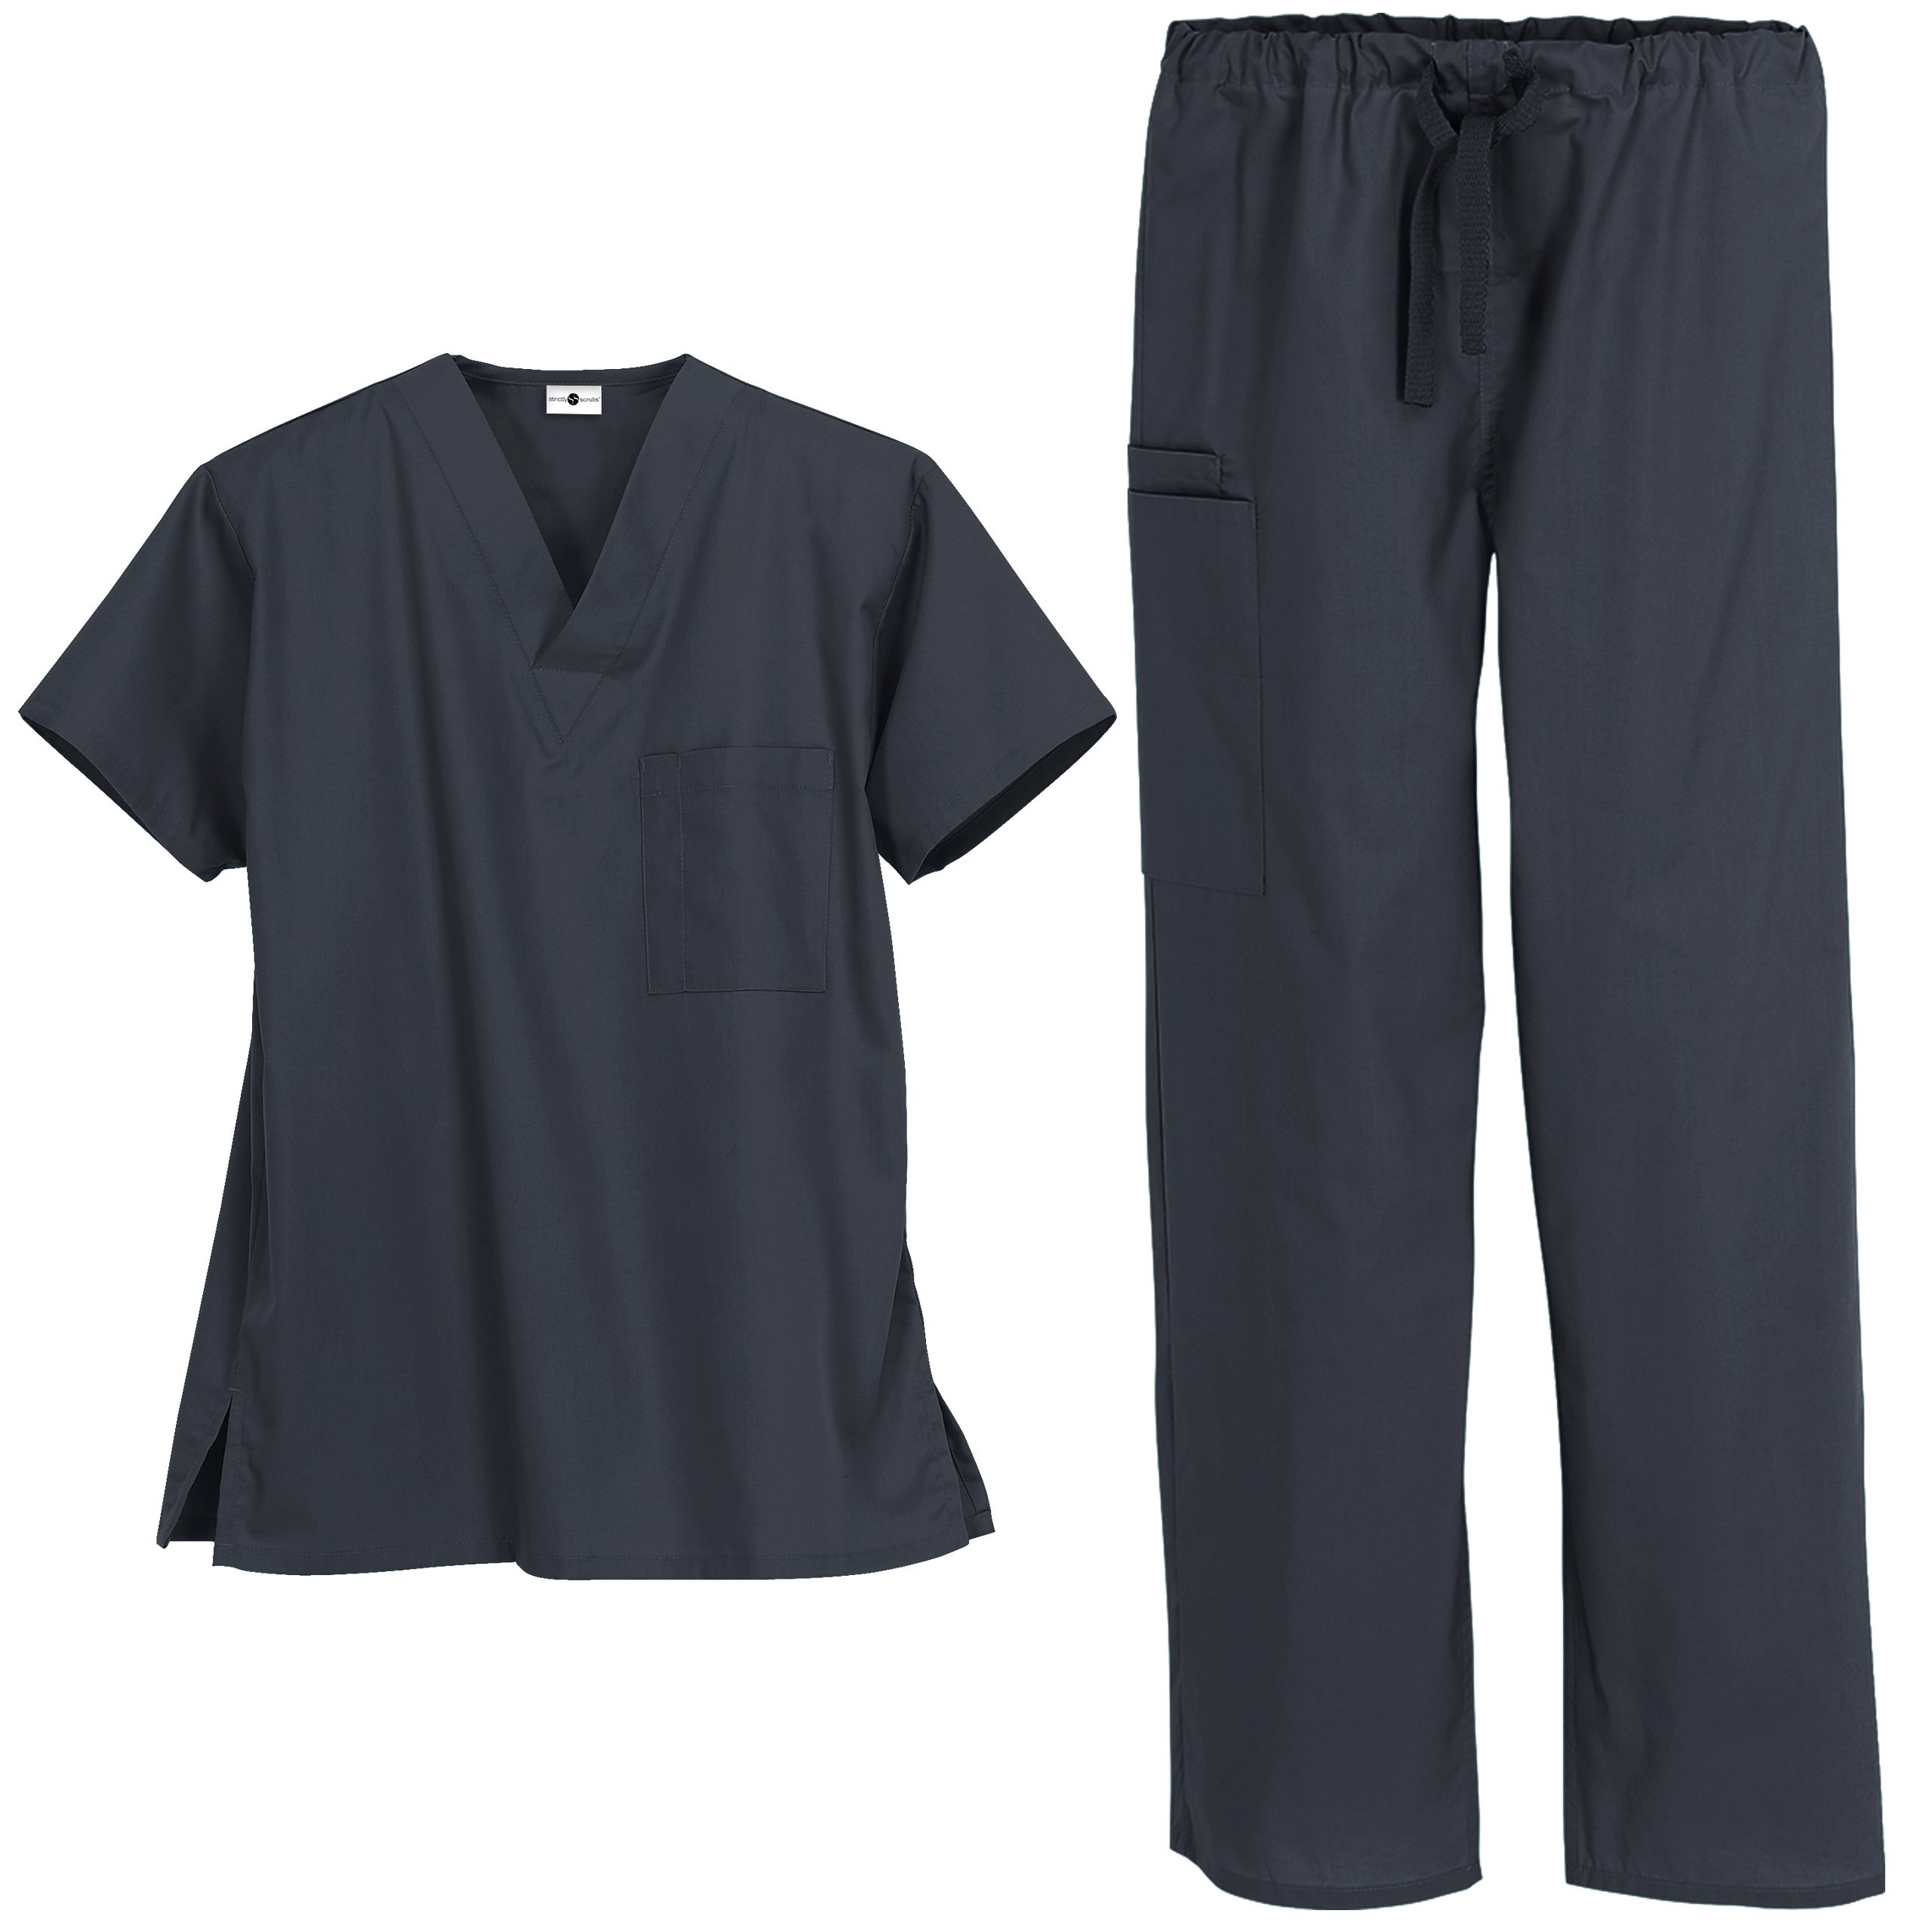 Unisex Medical Uniform Scrub Set – Includes V-Neck Top Drawstring Pant (XS-3X, 13 Colors) (X-Small, Pewter)